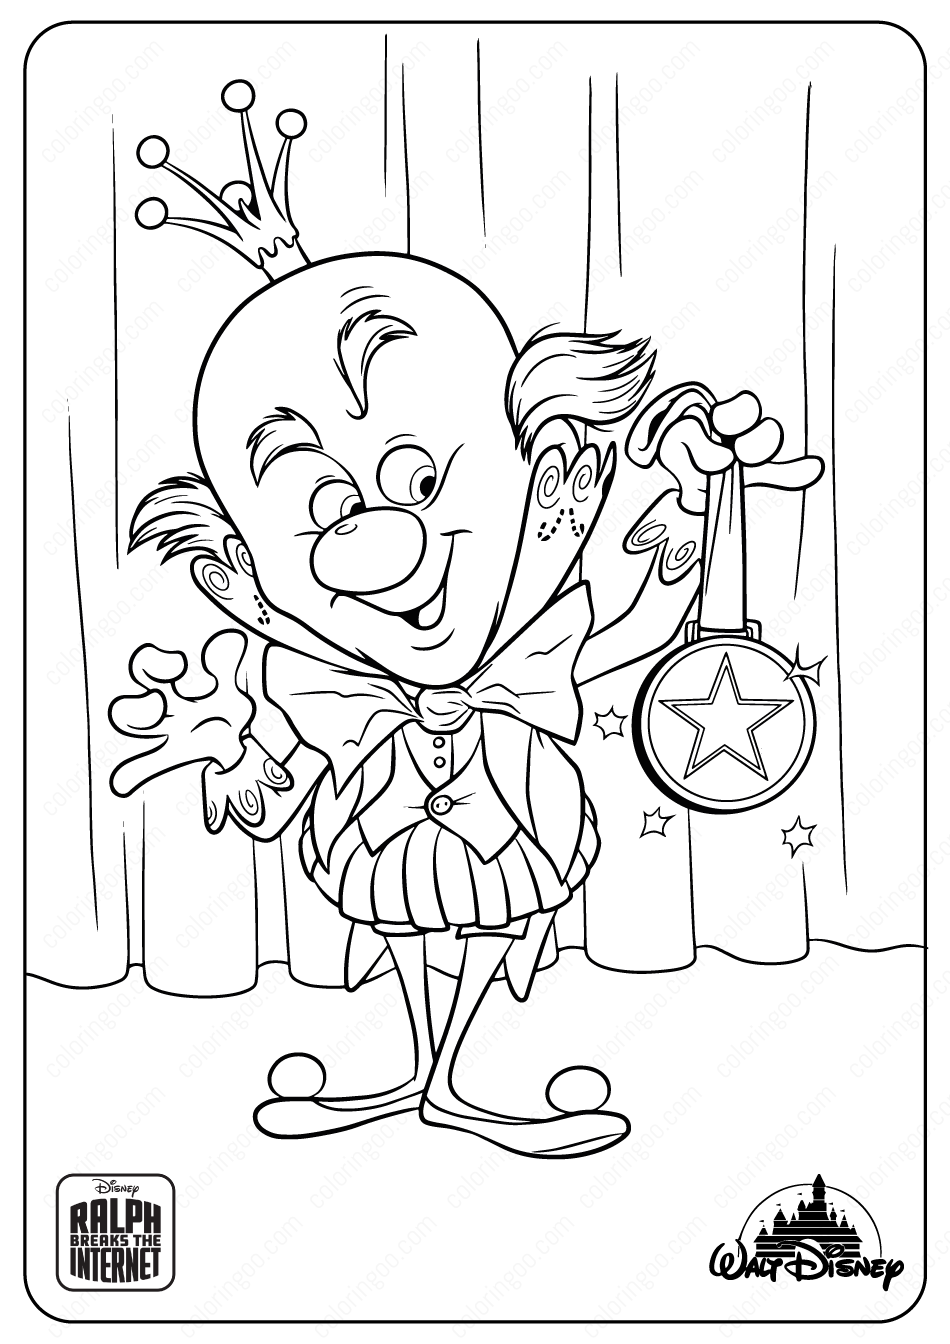 King Candy Coloring Pages In 2020 Candy Coloring Pages Disney Coloring Pages Cool Coloring Pages